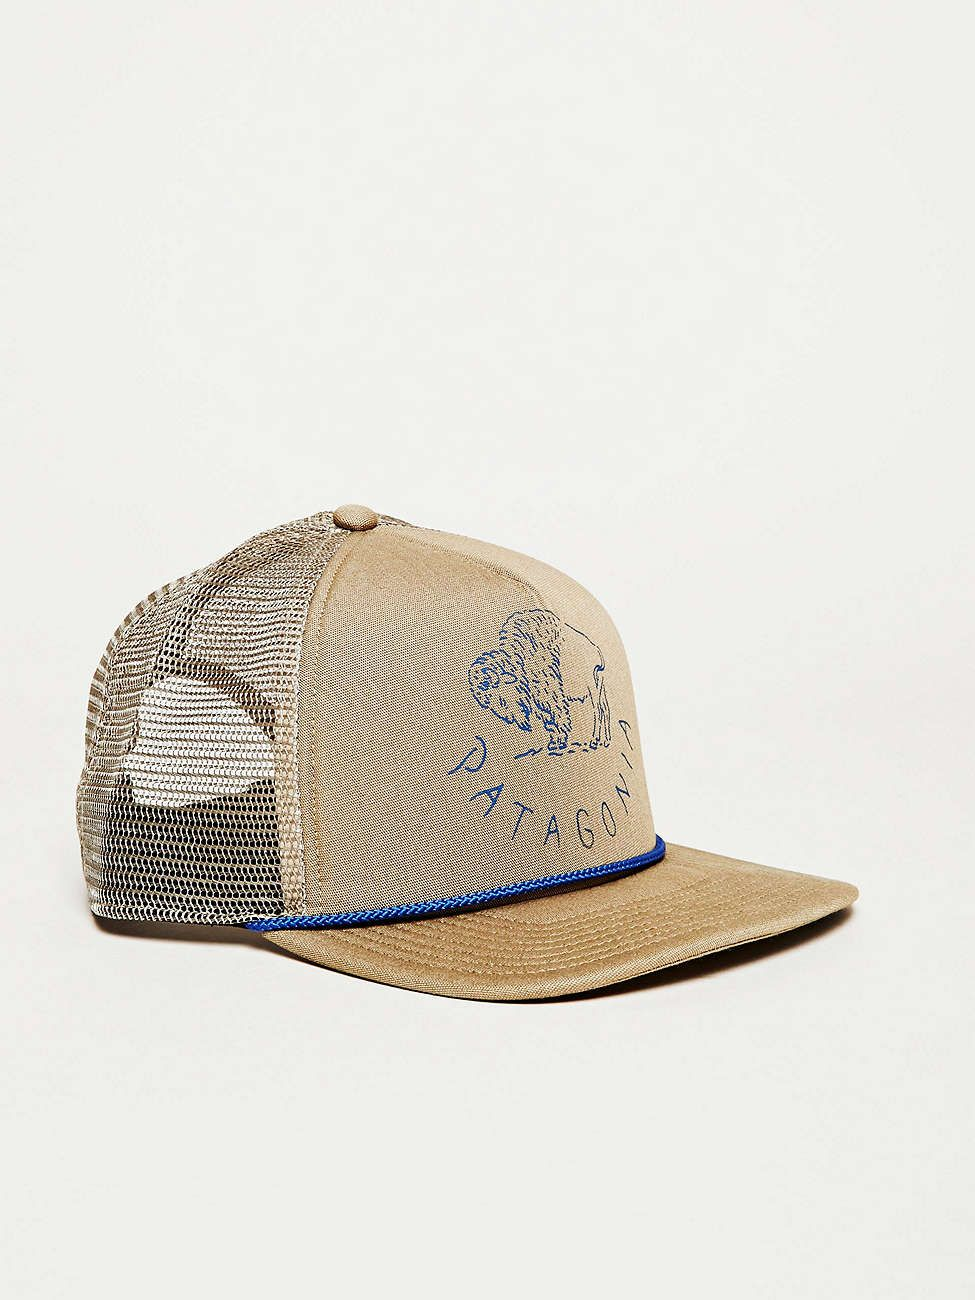 78ff5ed9 Patagonia Buffalo Hat - Urban Outfitters | Style Me | Hats ...